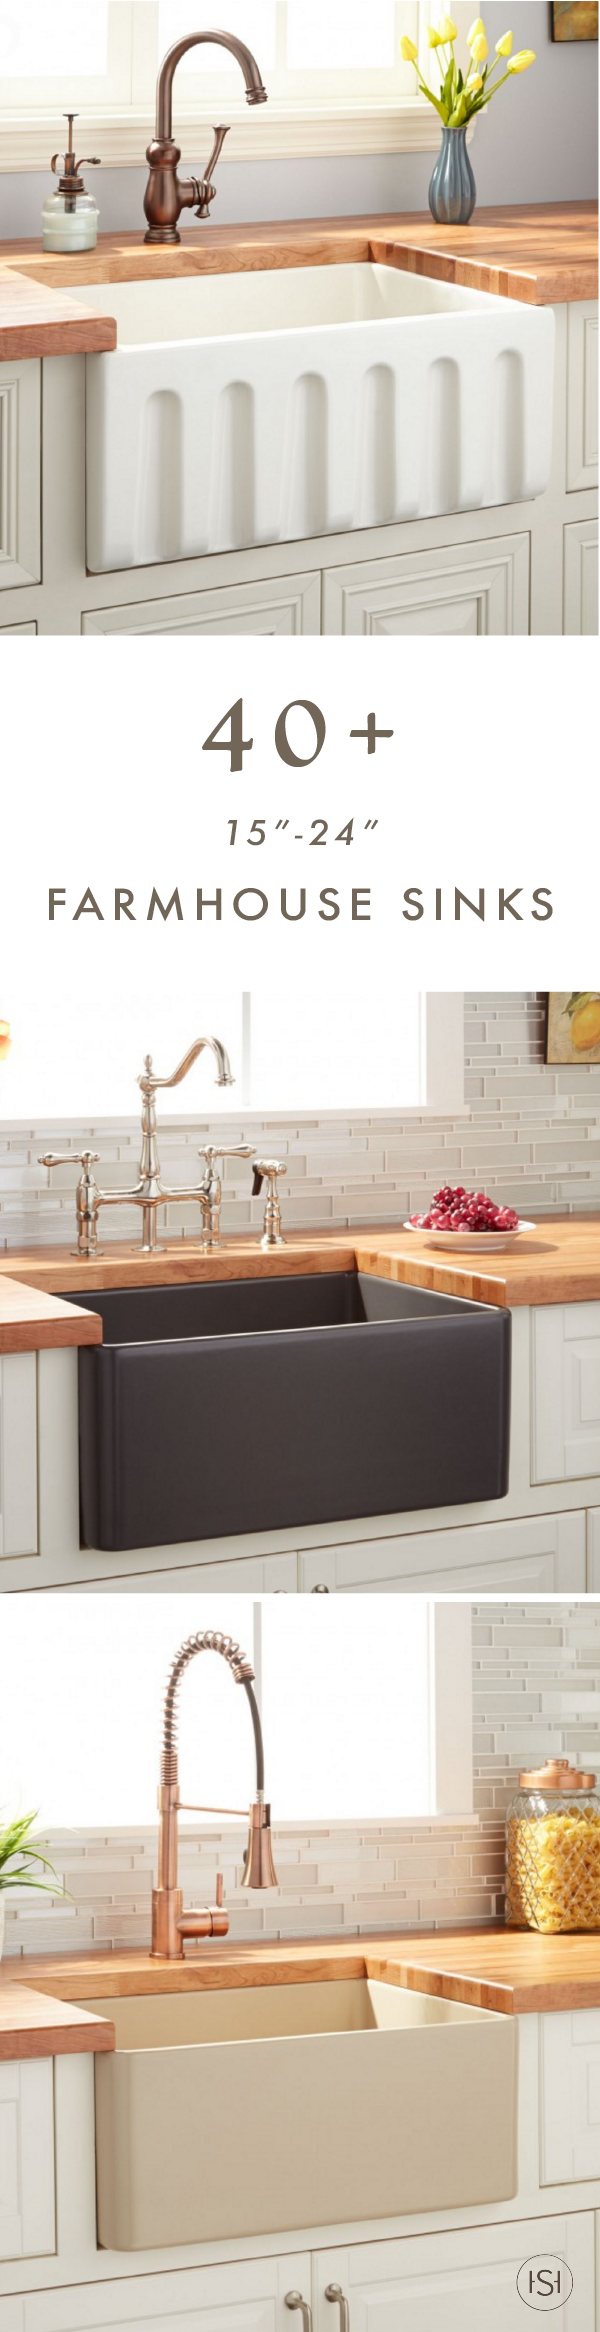 We Know You Love Farmhouse Sinks. So, Let All Your Kitchen Renovation  Dreams Come